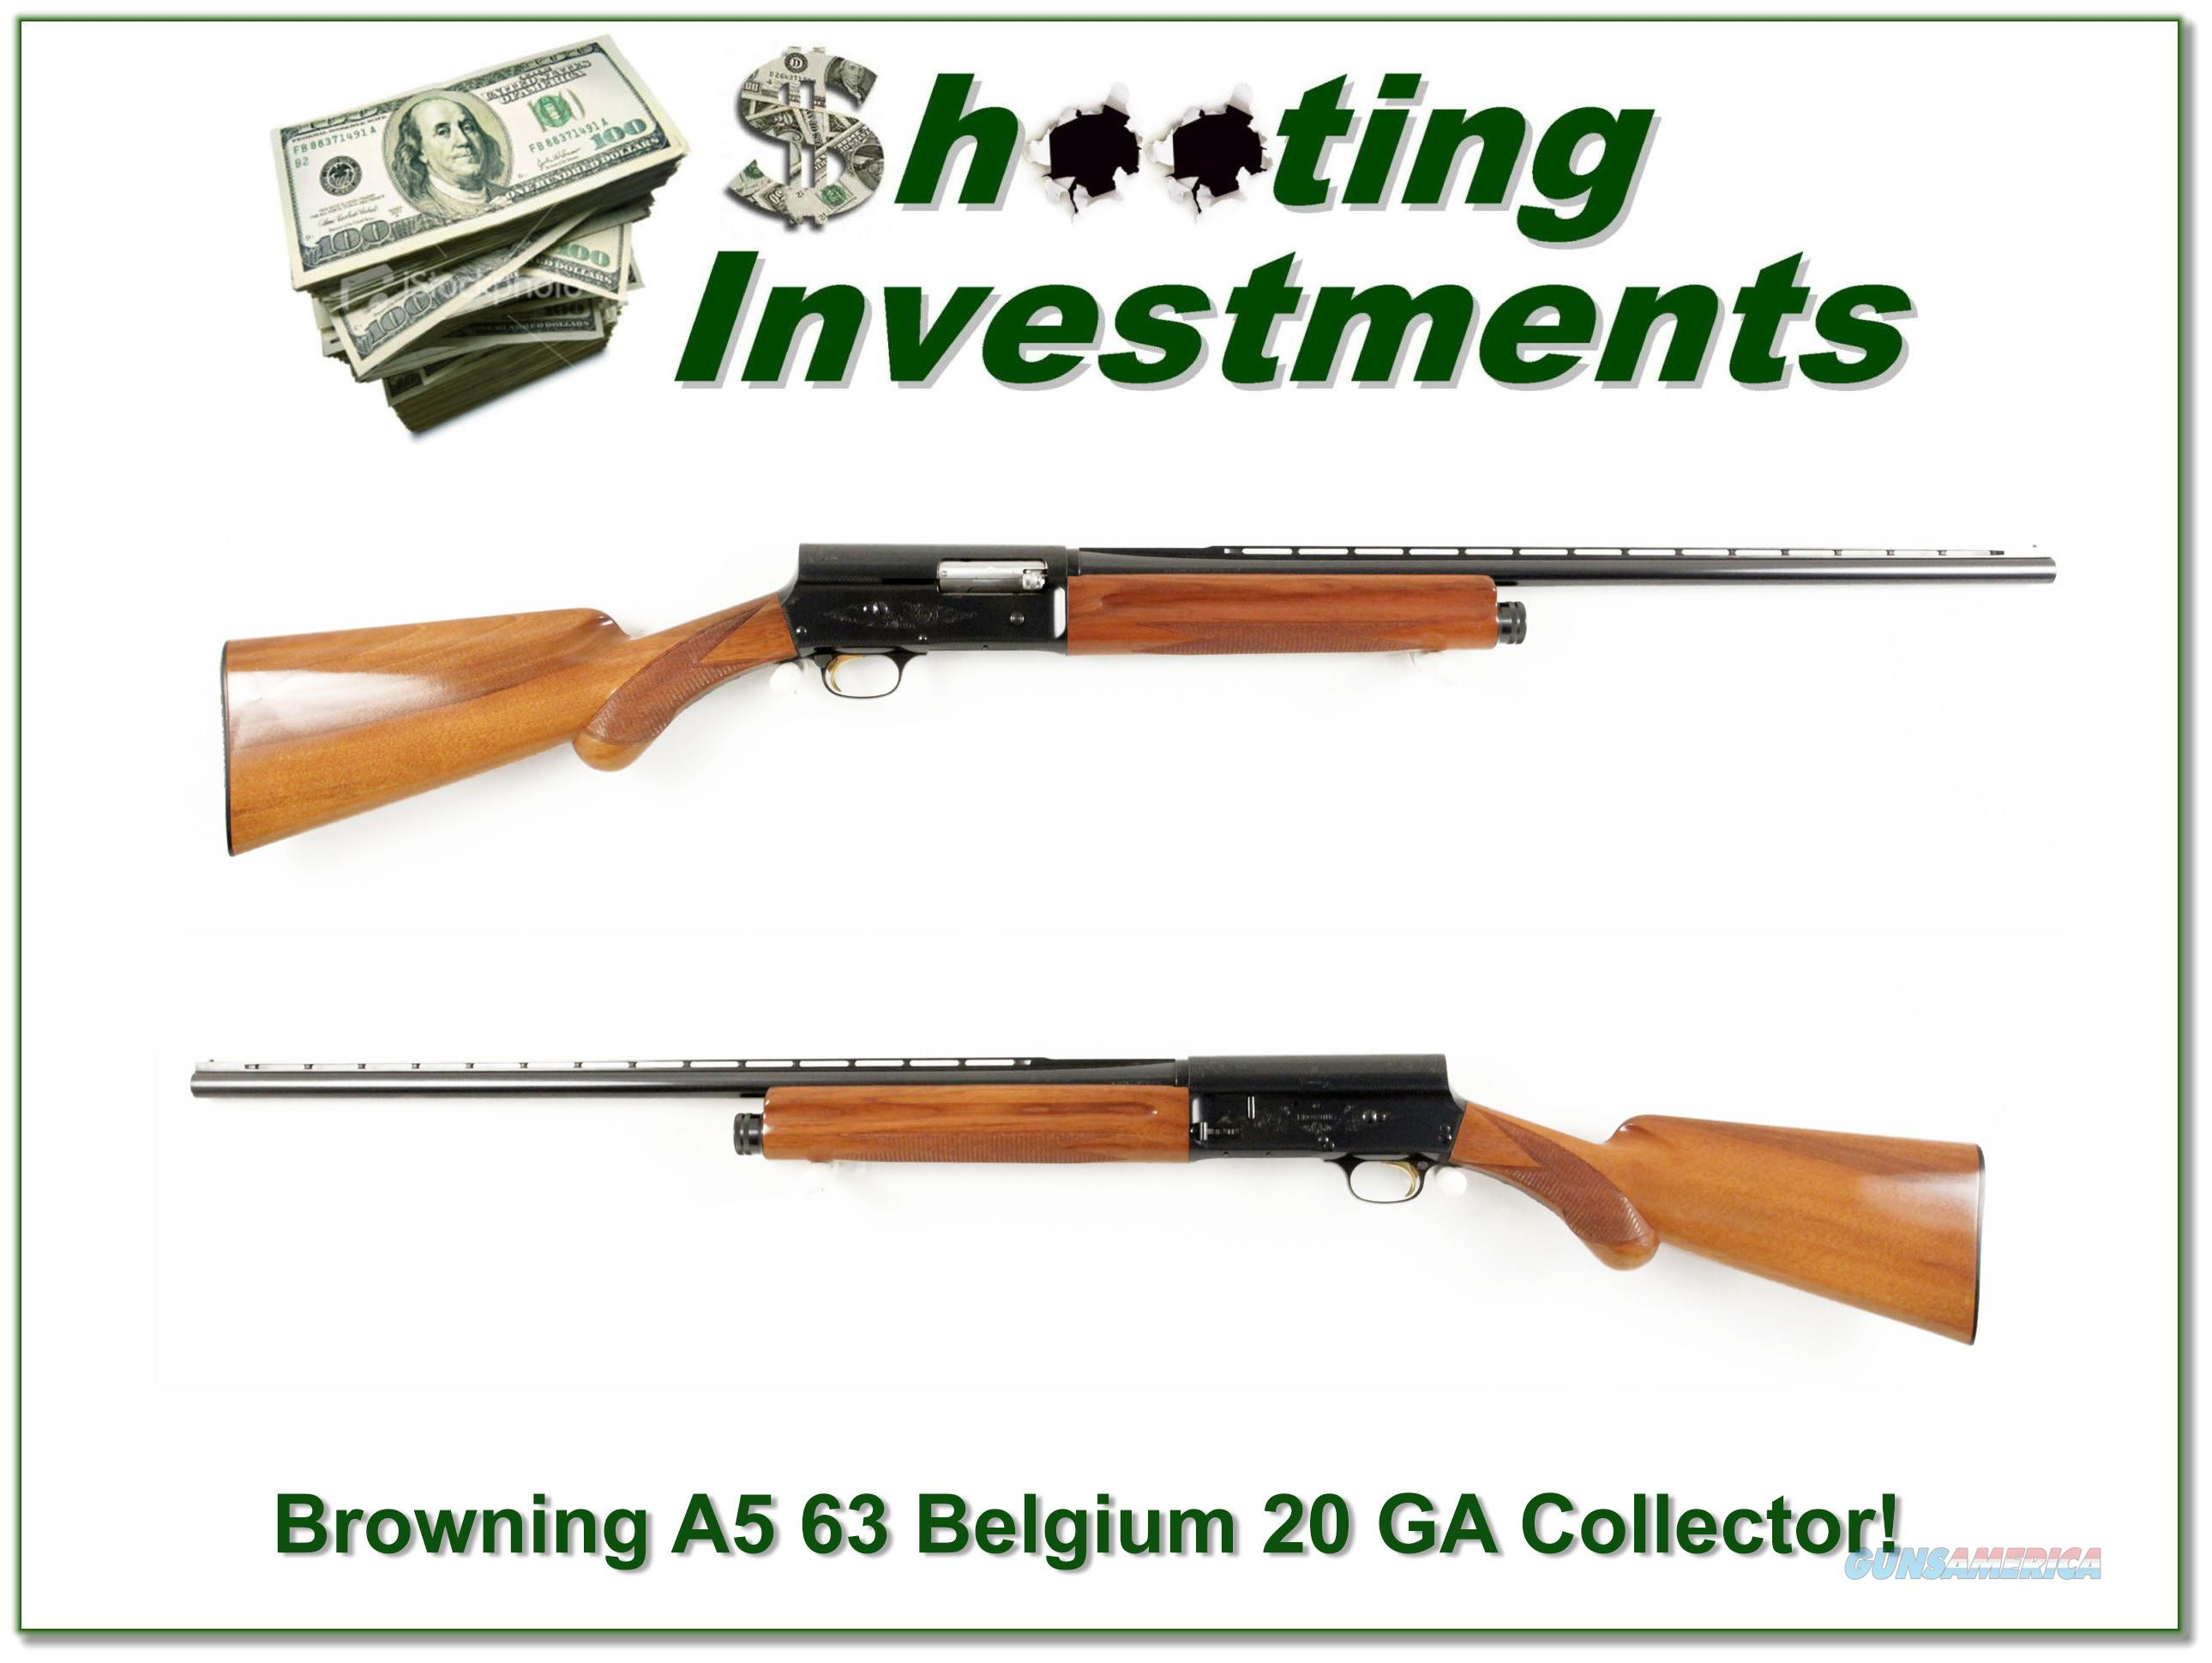 Browning A5 20 Gauge 63 Belgium Blond collector looks unfired!  Guns > Shotguns > Browning Shotguns > Autoloaders > Hunting